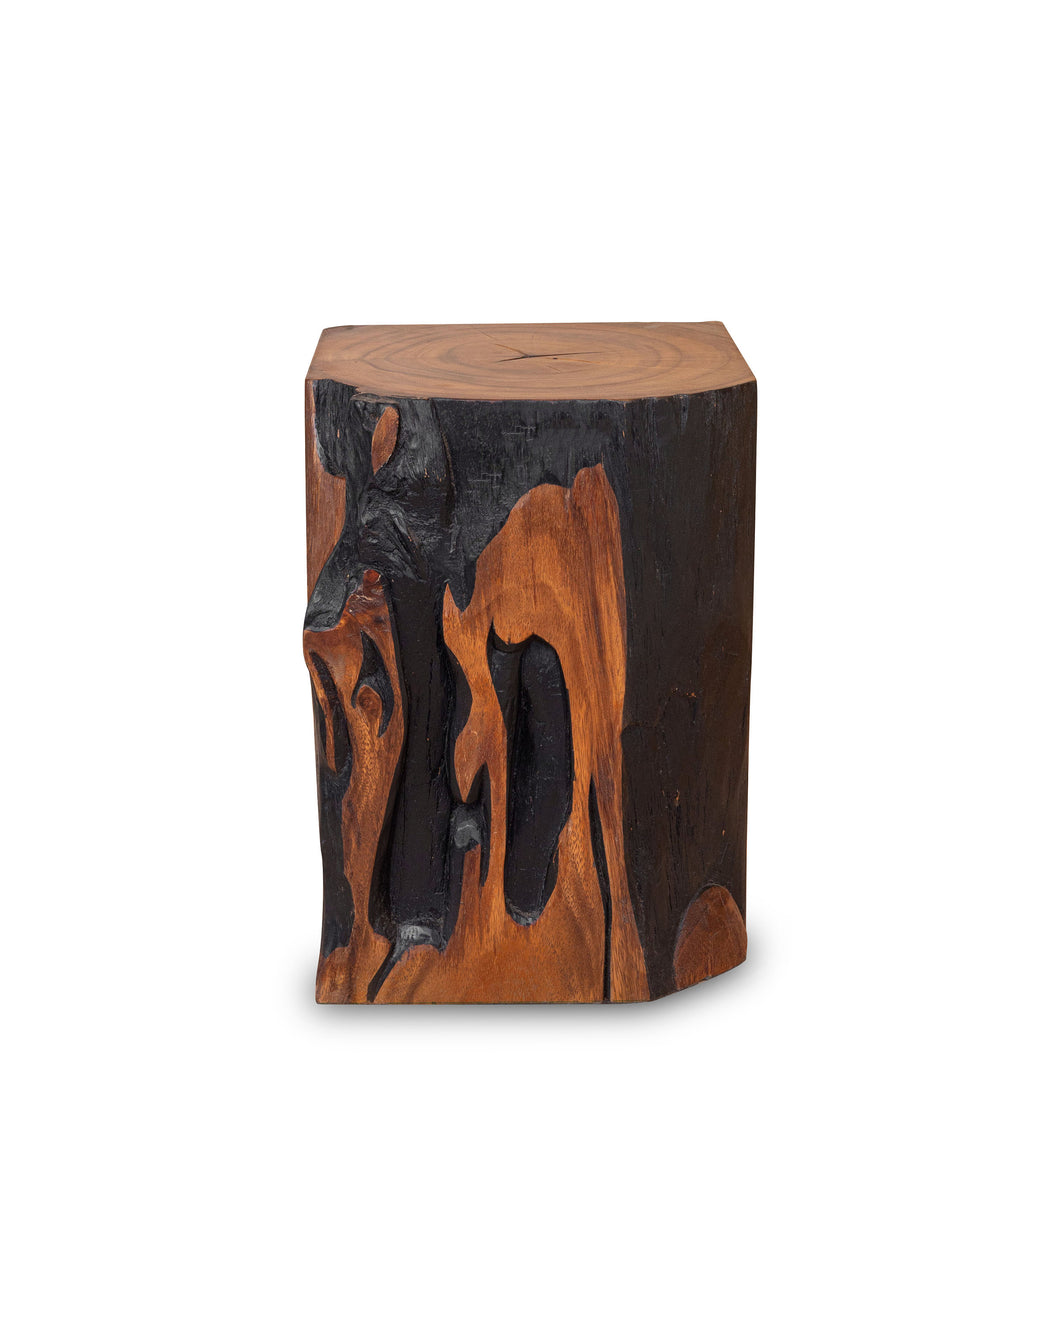 Square Solid Acacia  Wood Side Table, Black and Brown Natural Tree Stump Stool or End Table #1 (COMING IN THE END OF AUGUST)